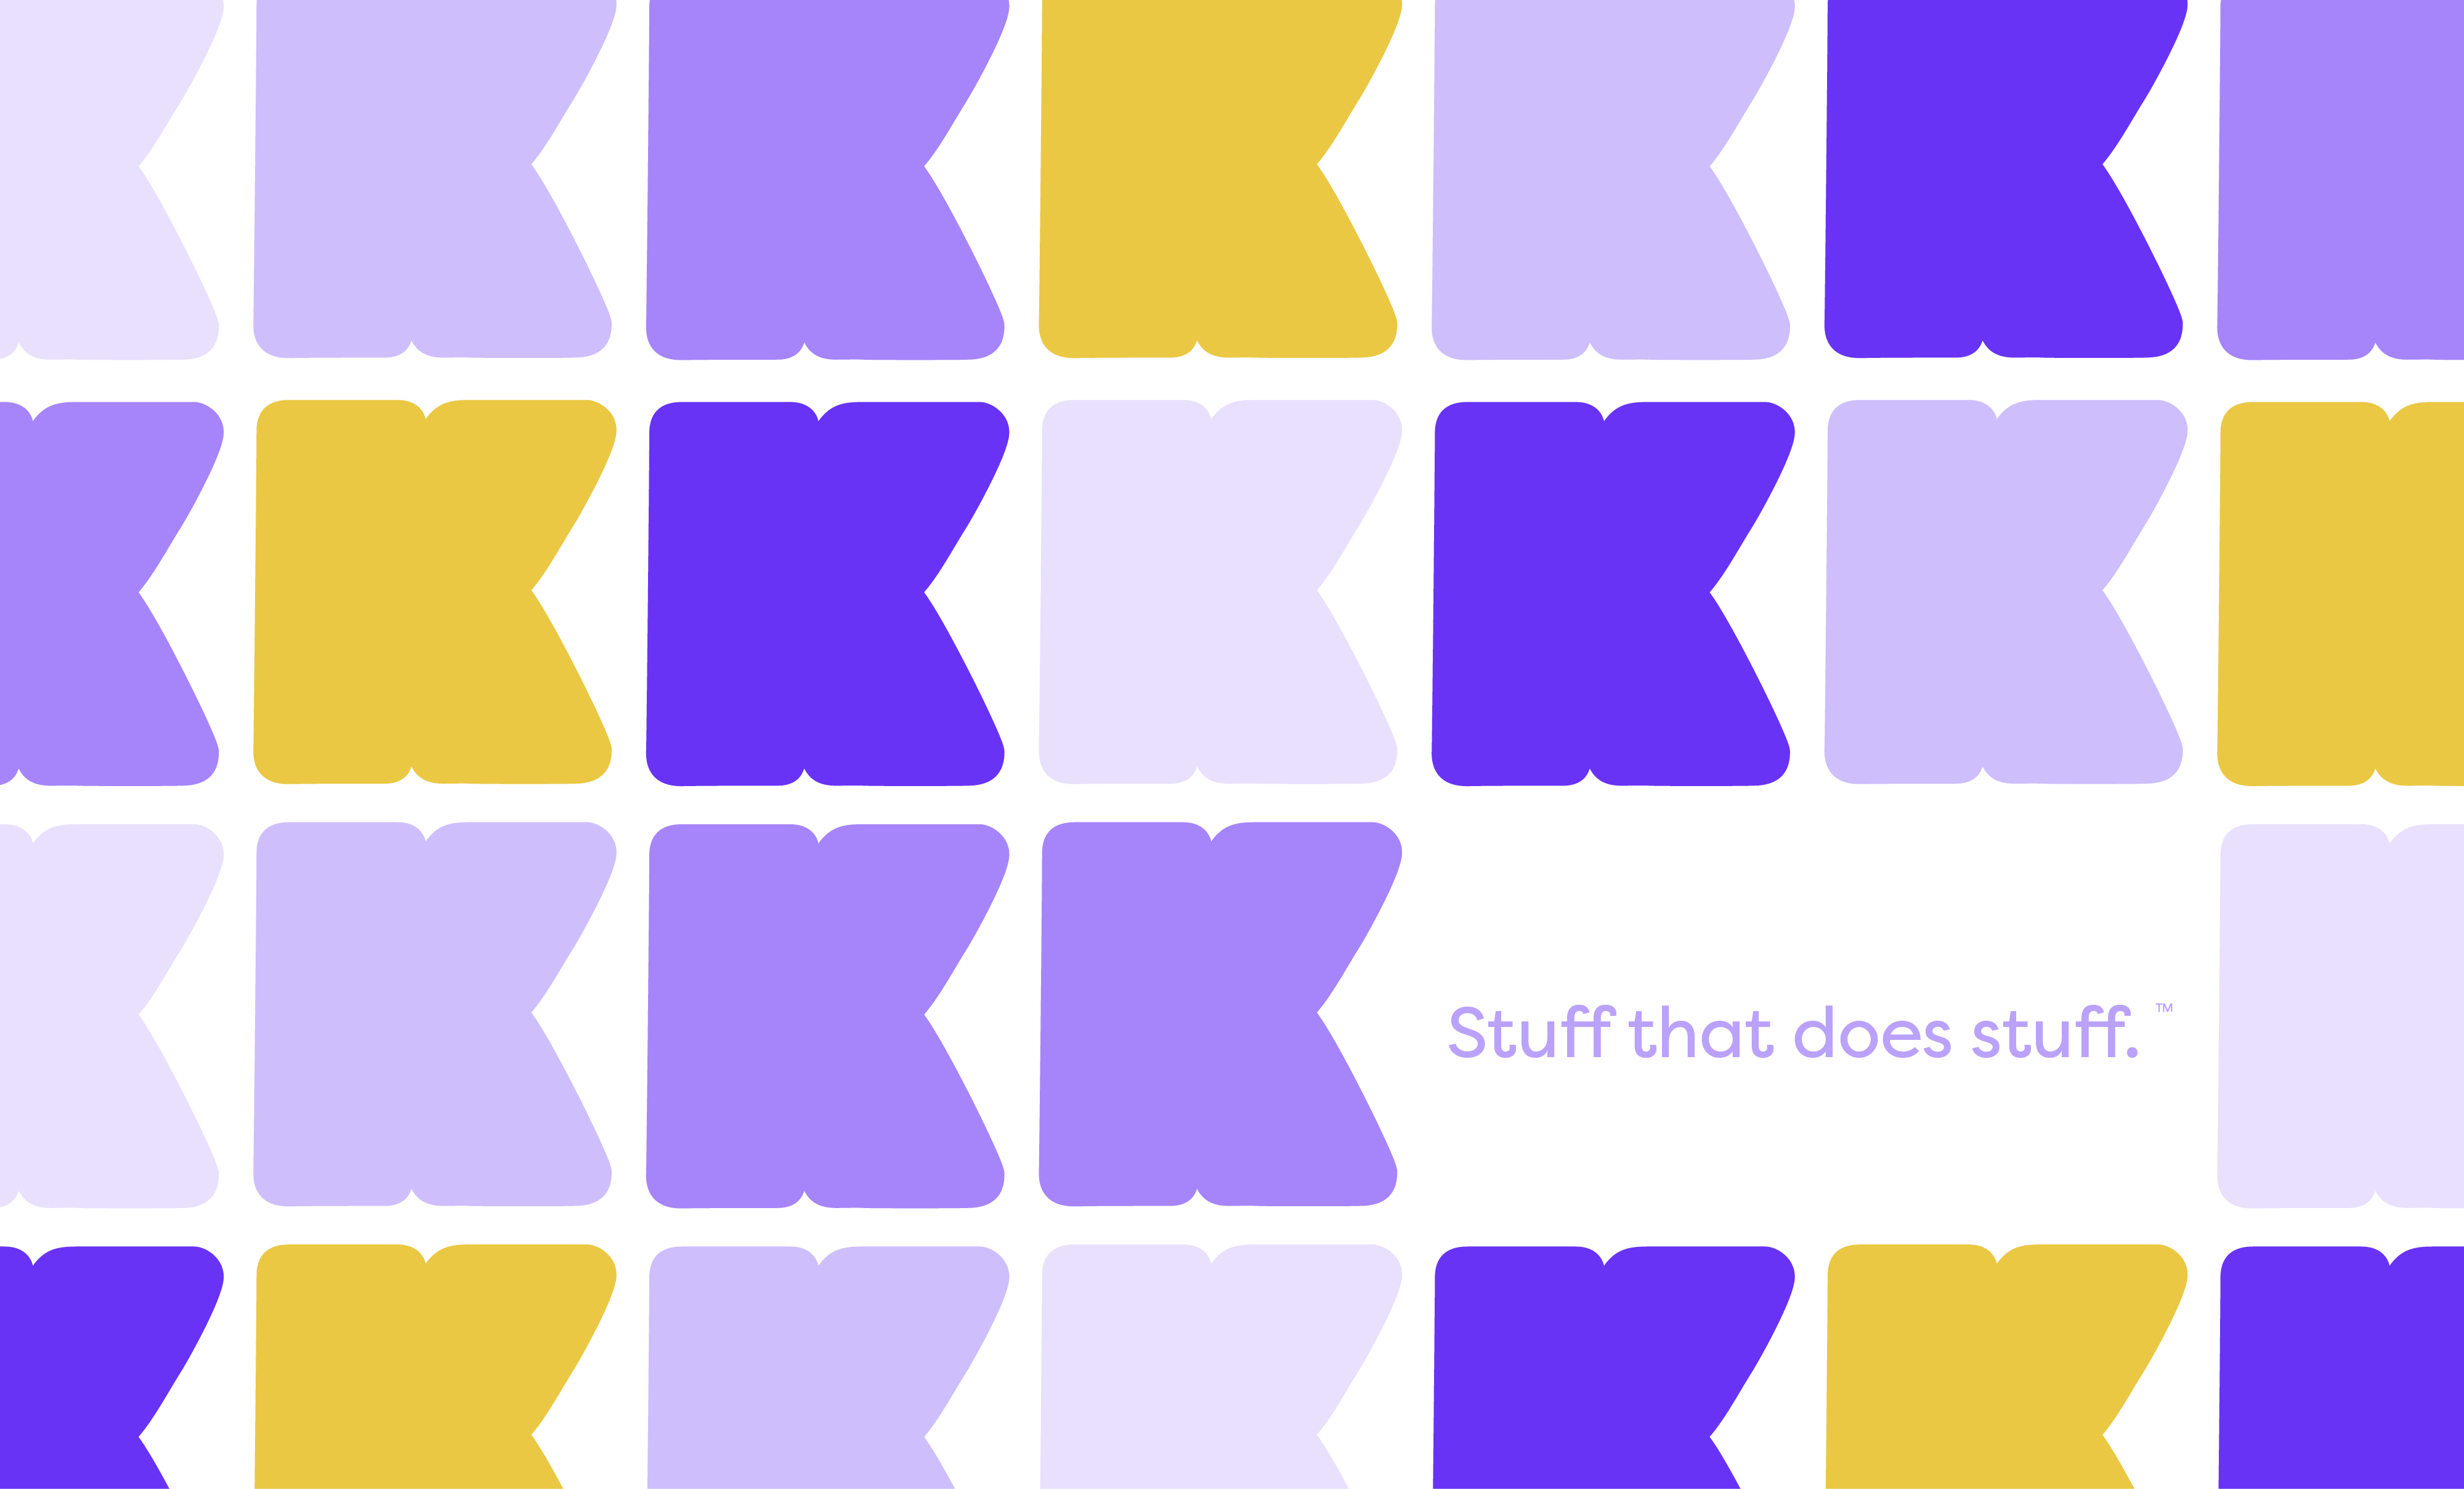 Stuff that does Stuff™ Klee Brand, Packaging Design and Strategy by Ptex Group